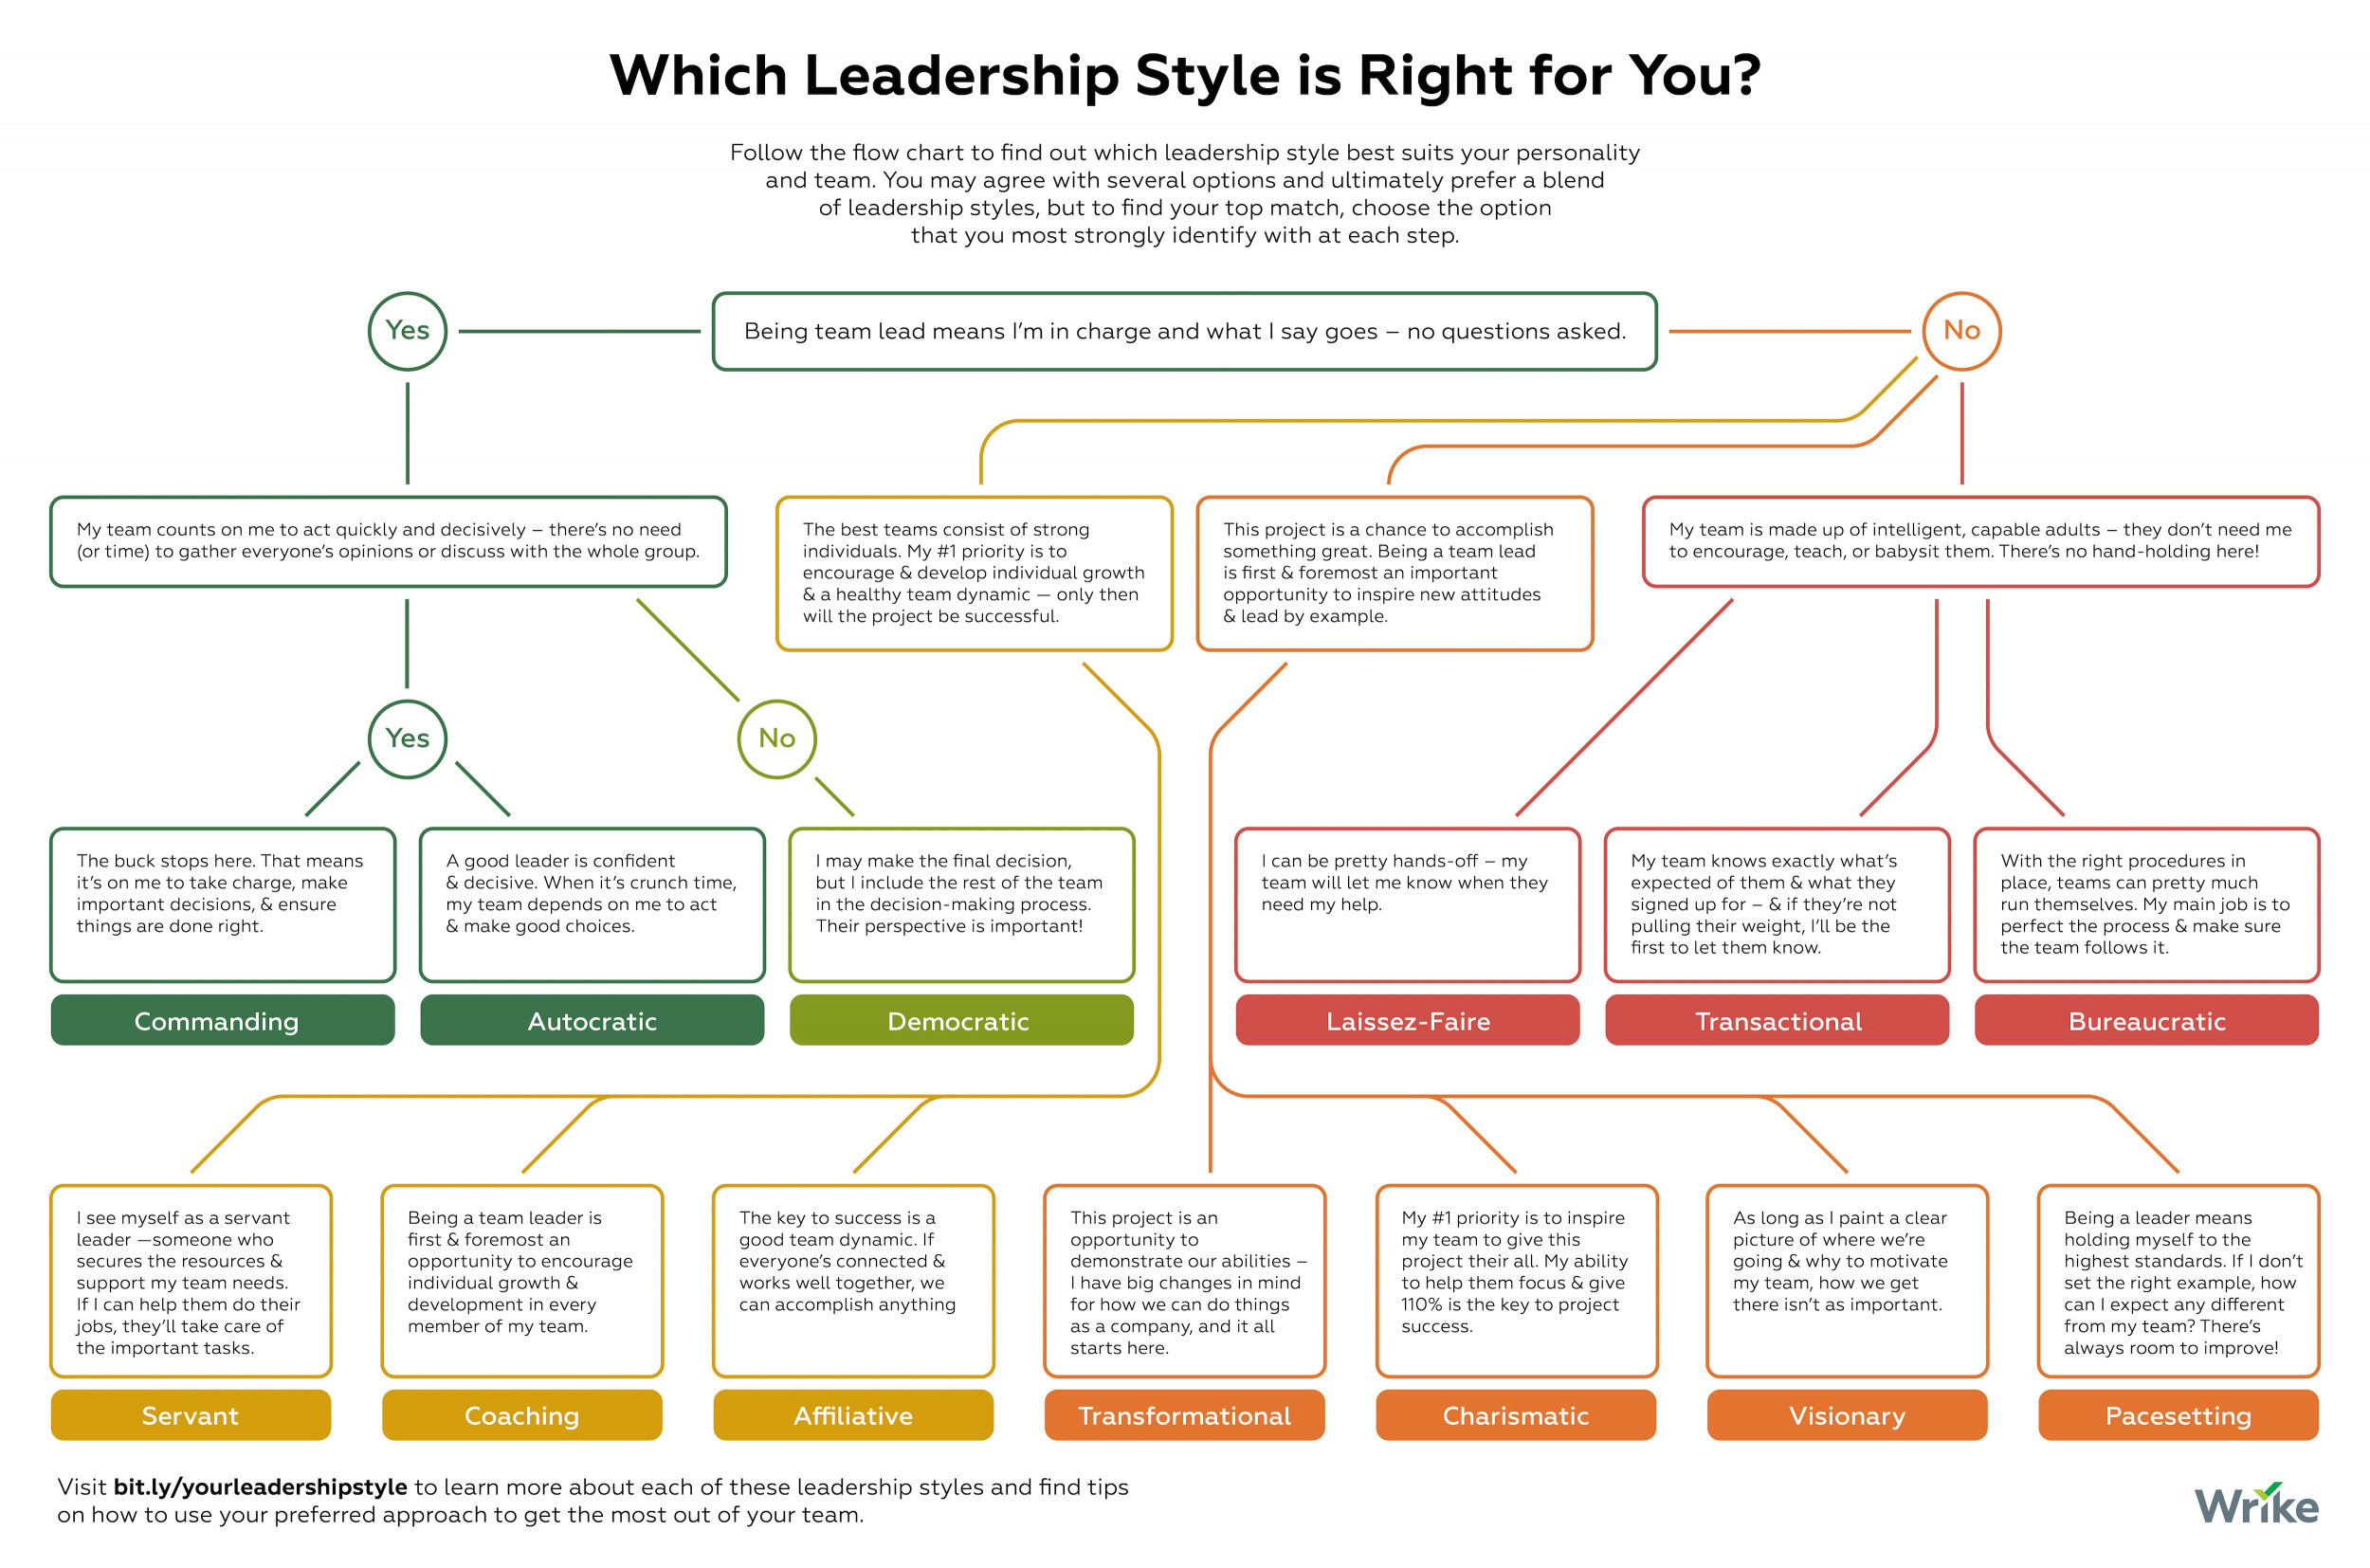 Which of These Leadership Styles is Right for You? (Decision Tree)